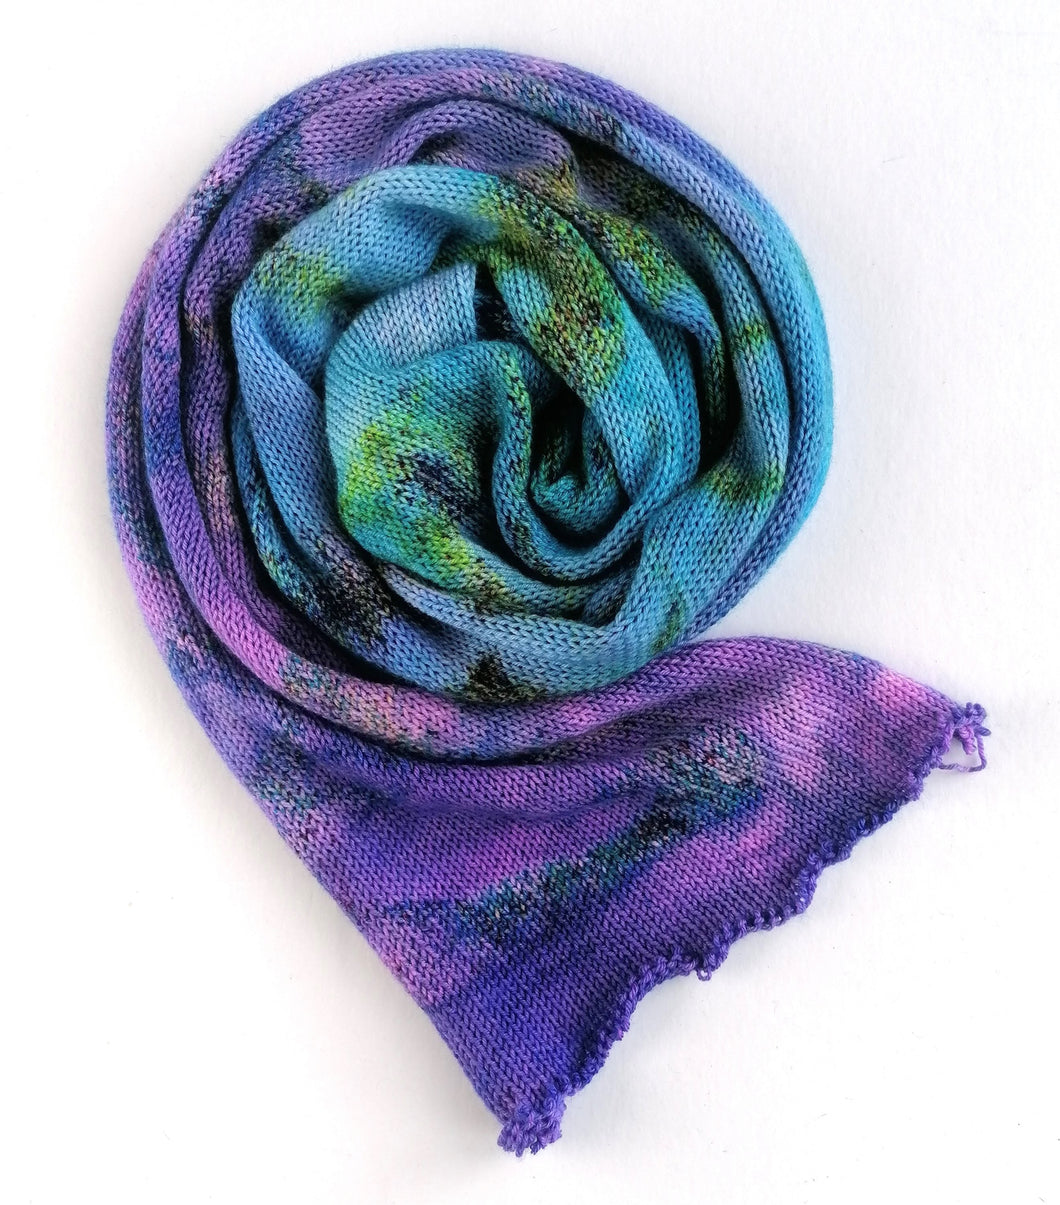 Hand dyed sock blank in a Superwash Merino/Nylon base in purple and blue.